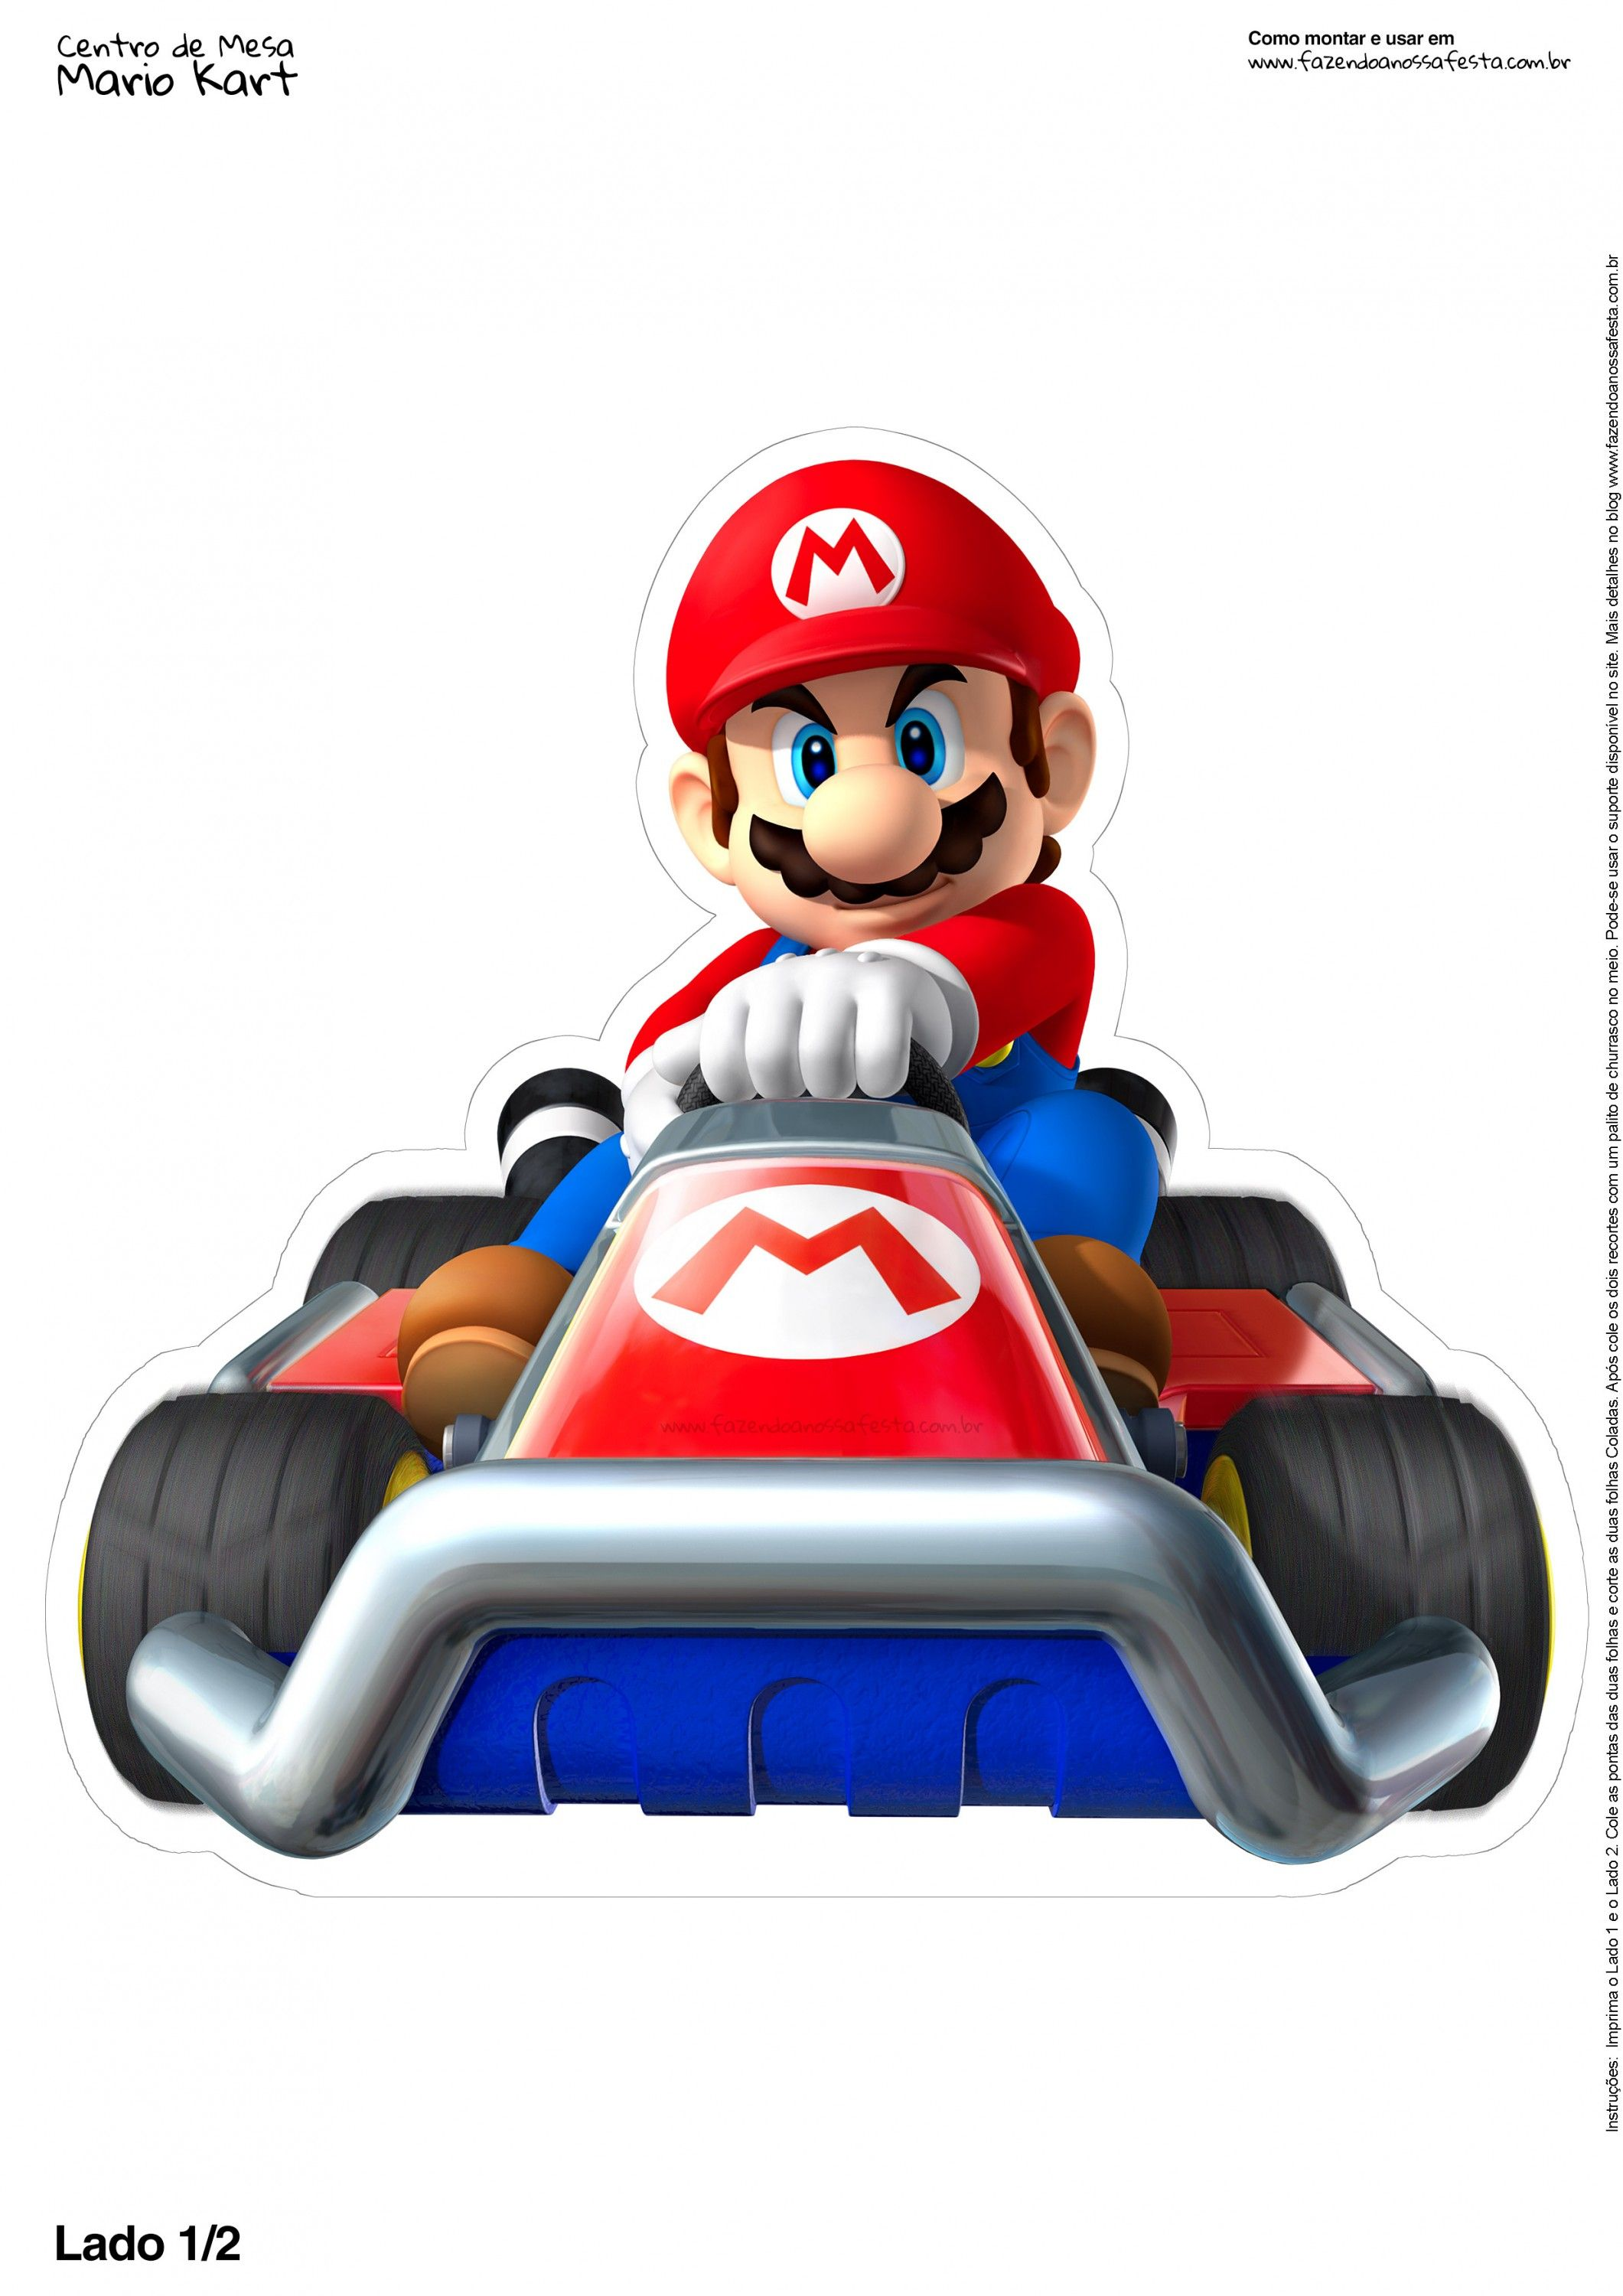 centro de mesa mario kart 2 2 mario brothers printables pinterest mario kart super mario. Black Bedroom Furniture Sets. Home Design Ideas